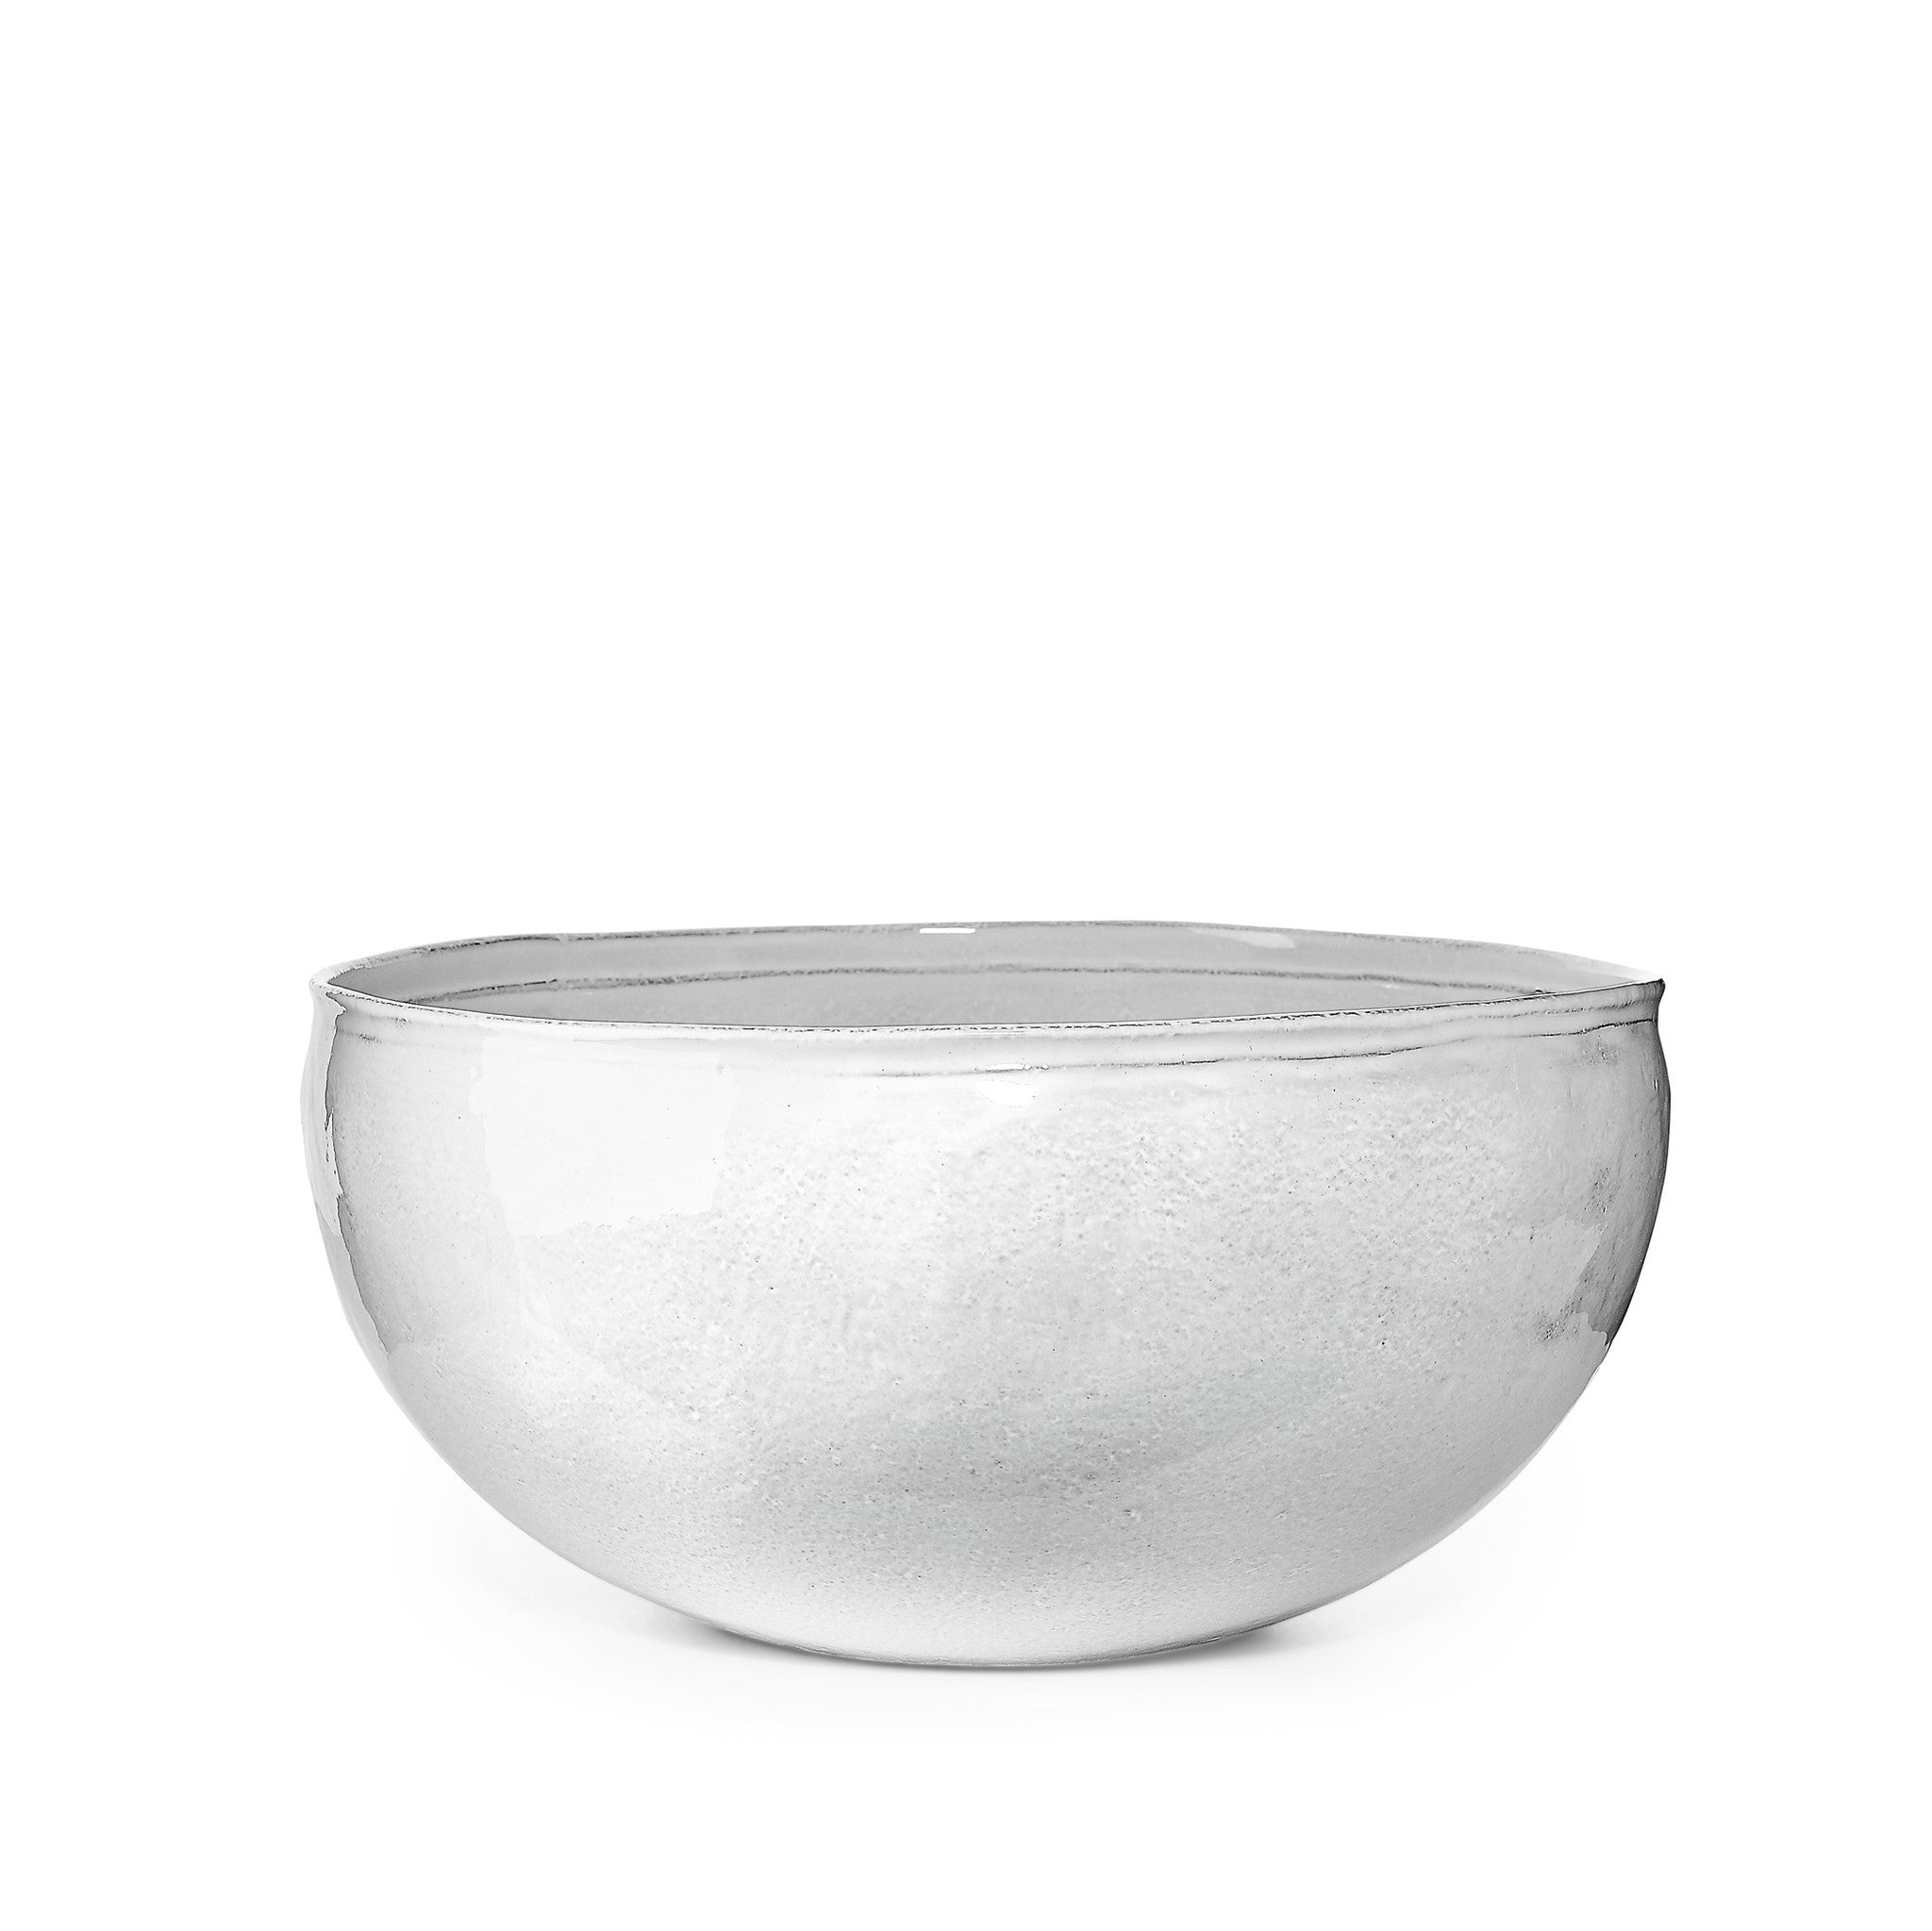 Simple Salad Bowl, Large by Astier de Villatte